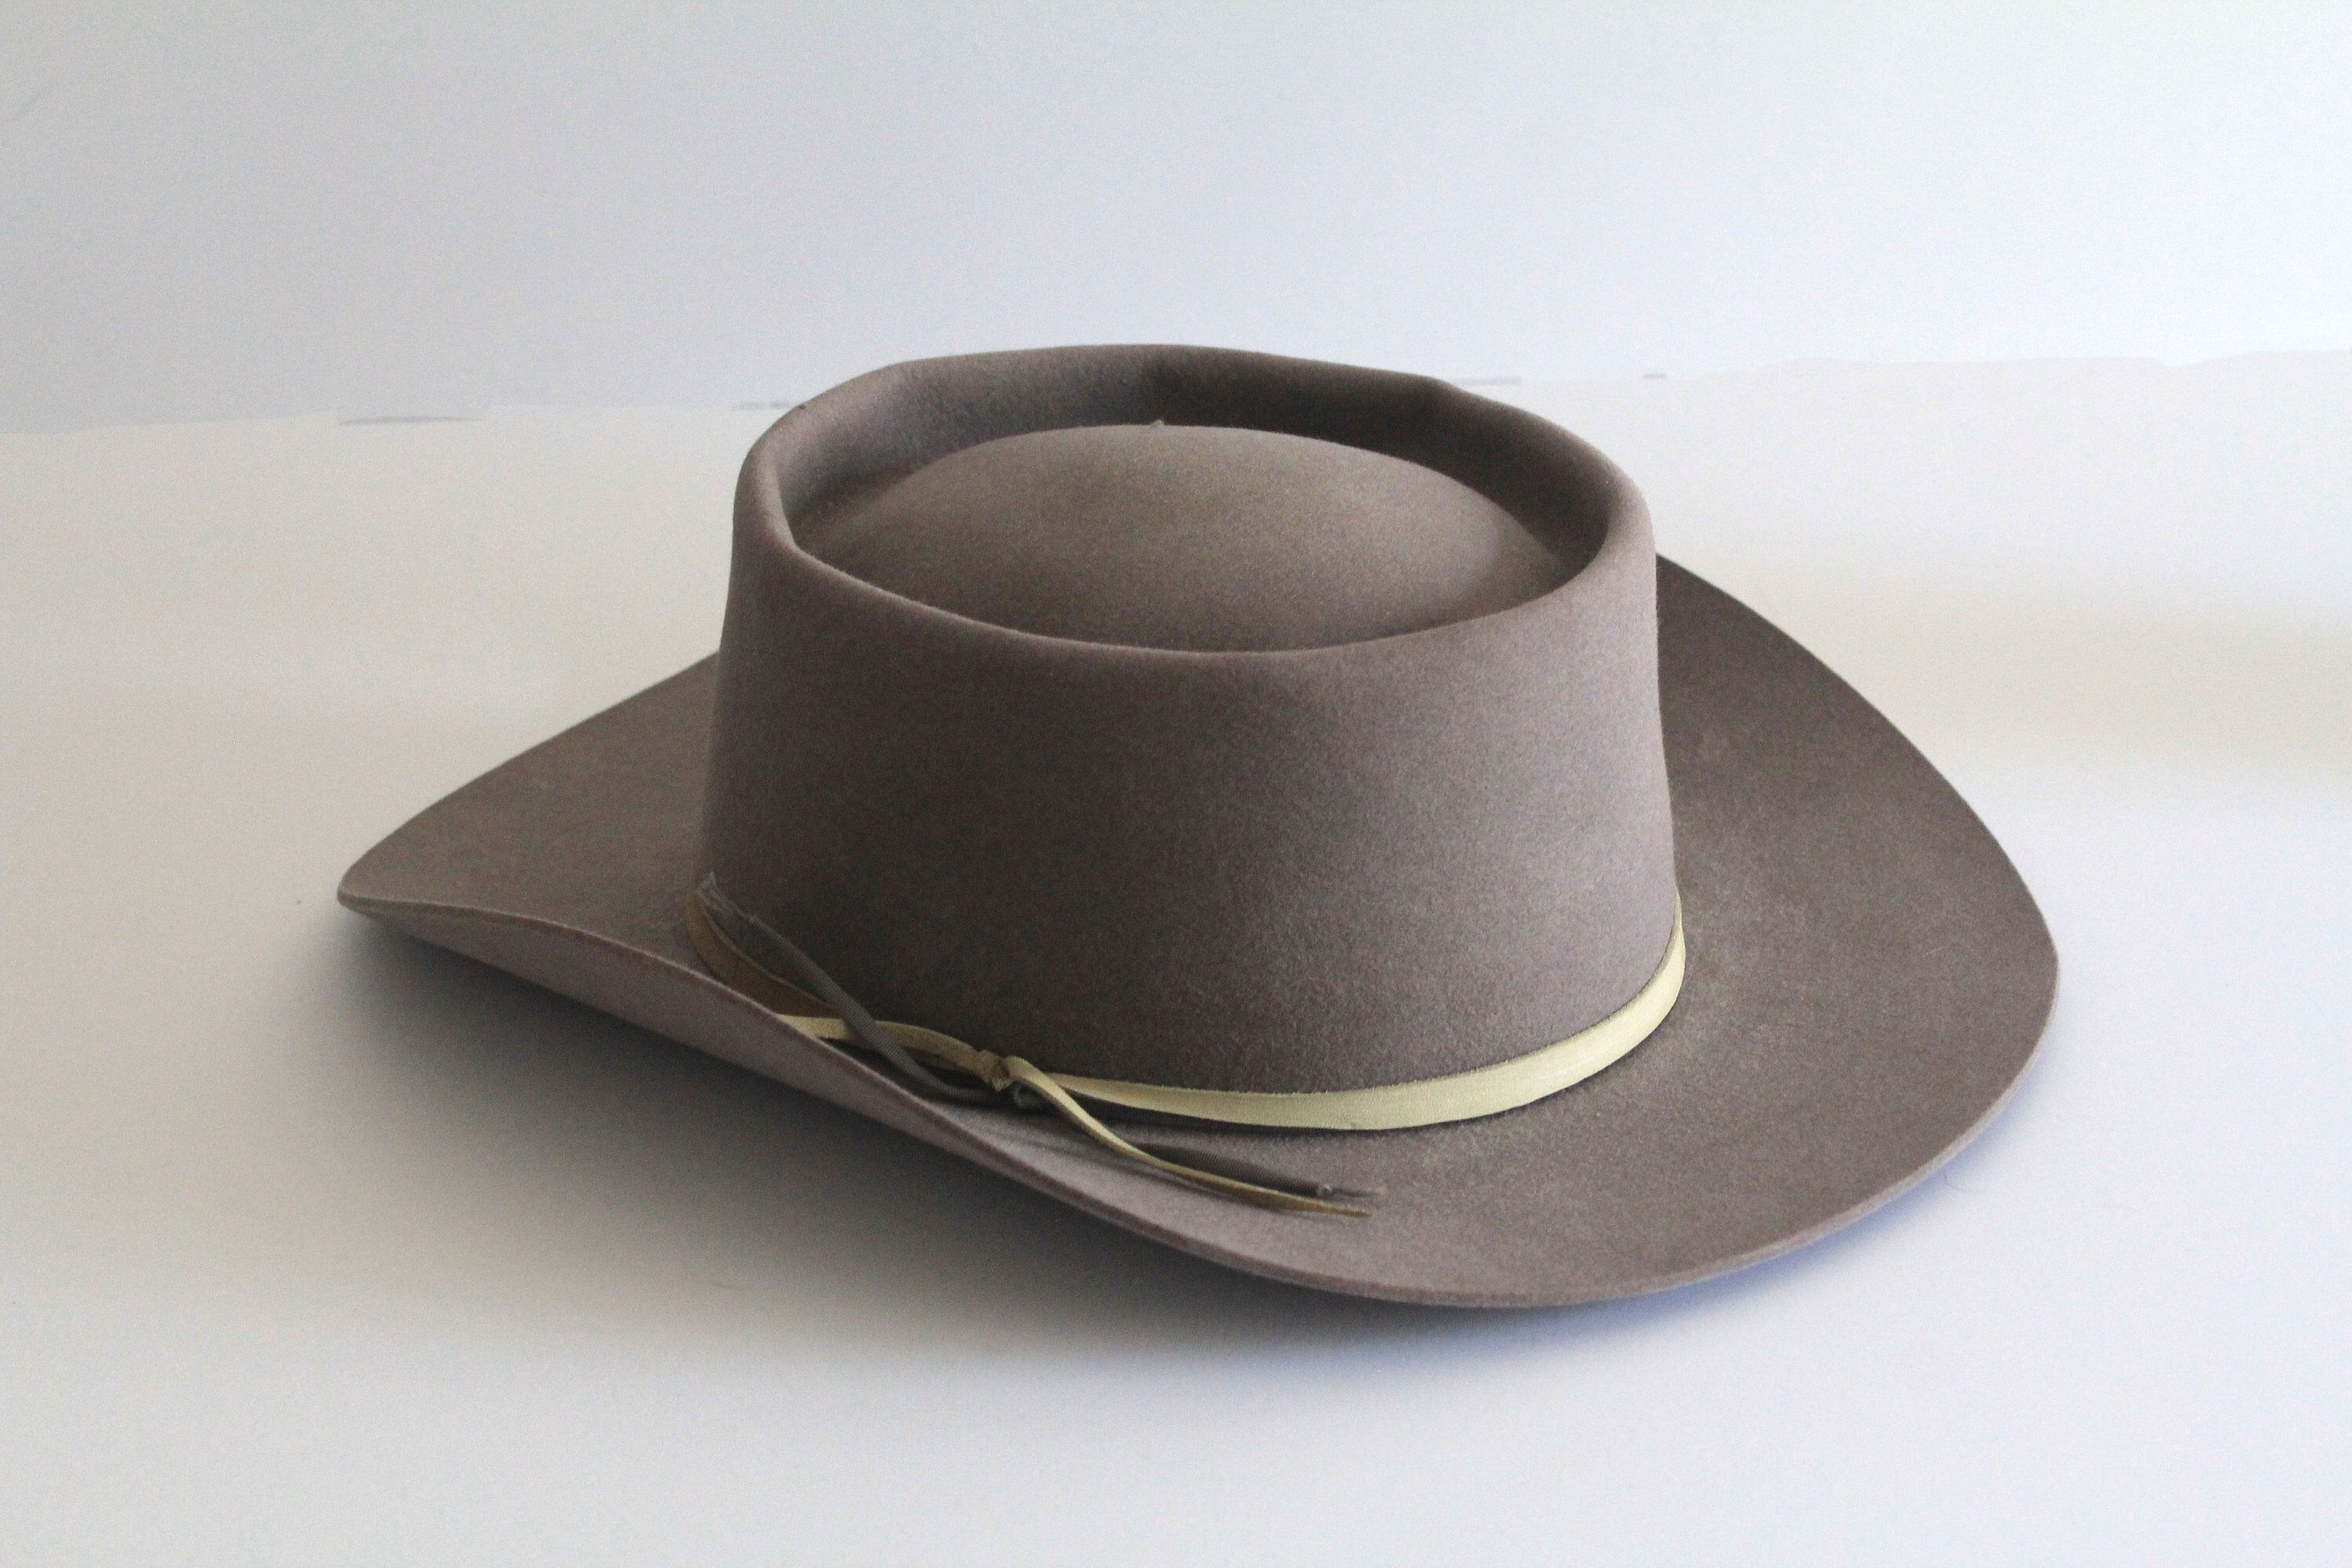 0b1609569 Pin by Lisa Archer on Hats in 2019 | Cowboy hats, Hats, Stuff to buy